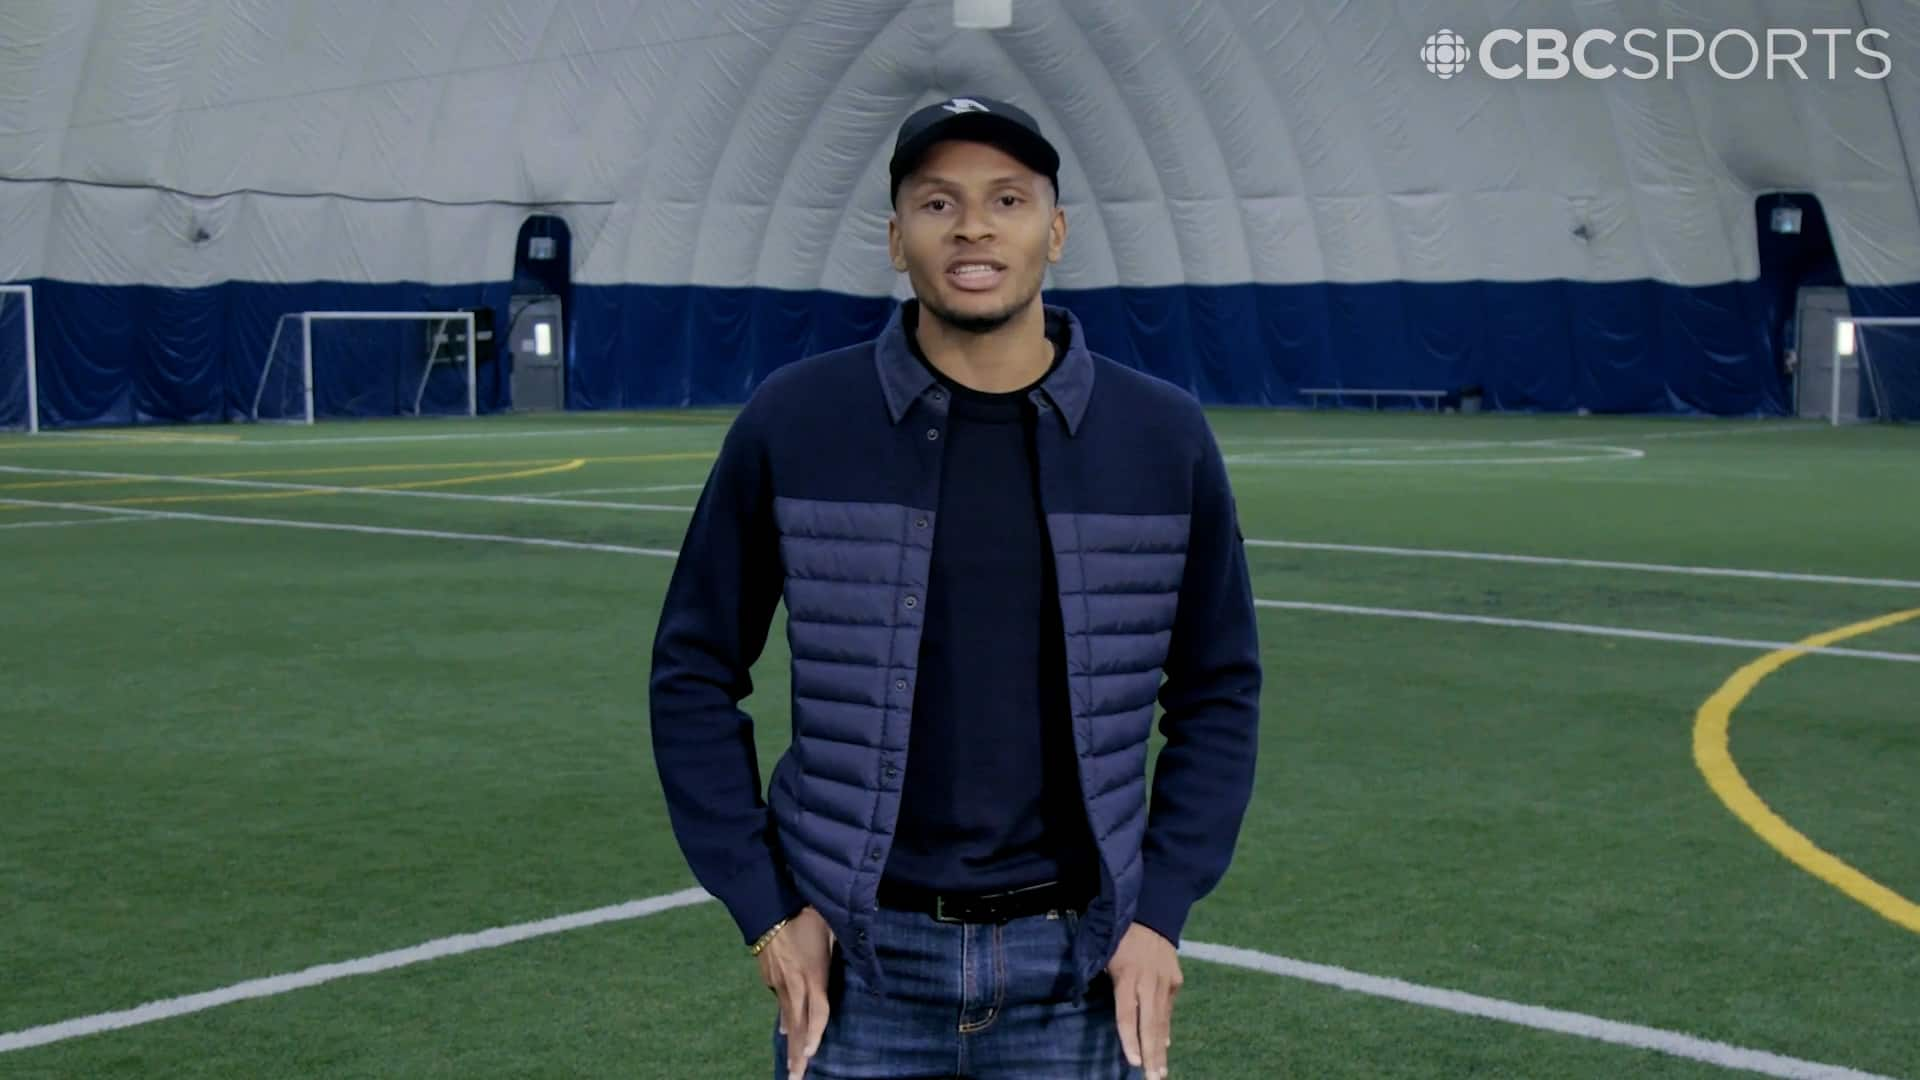 Andre De Grasse on his plan to get even faster on the track